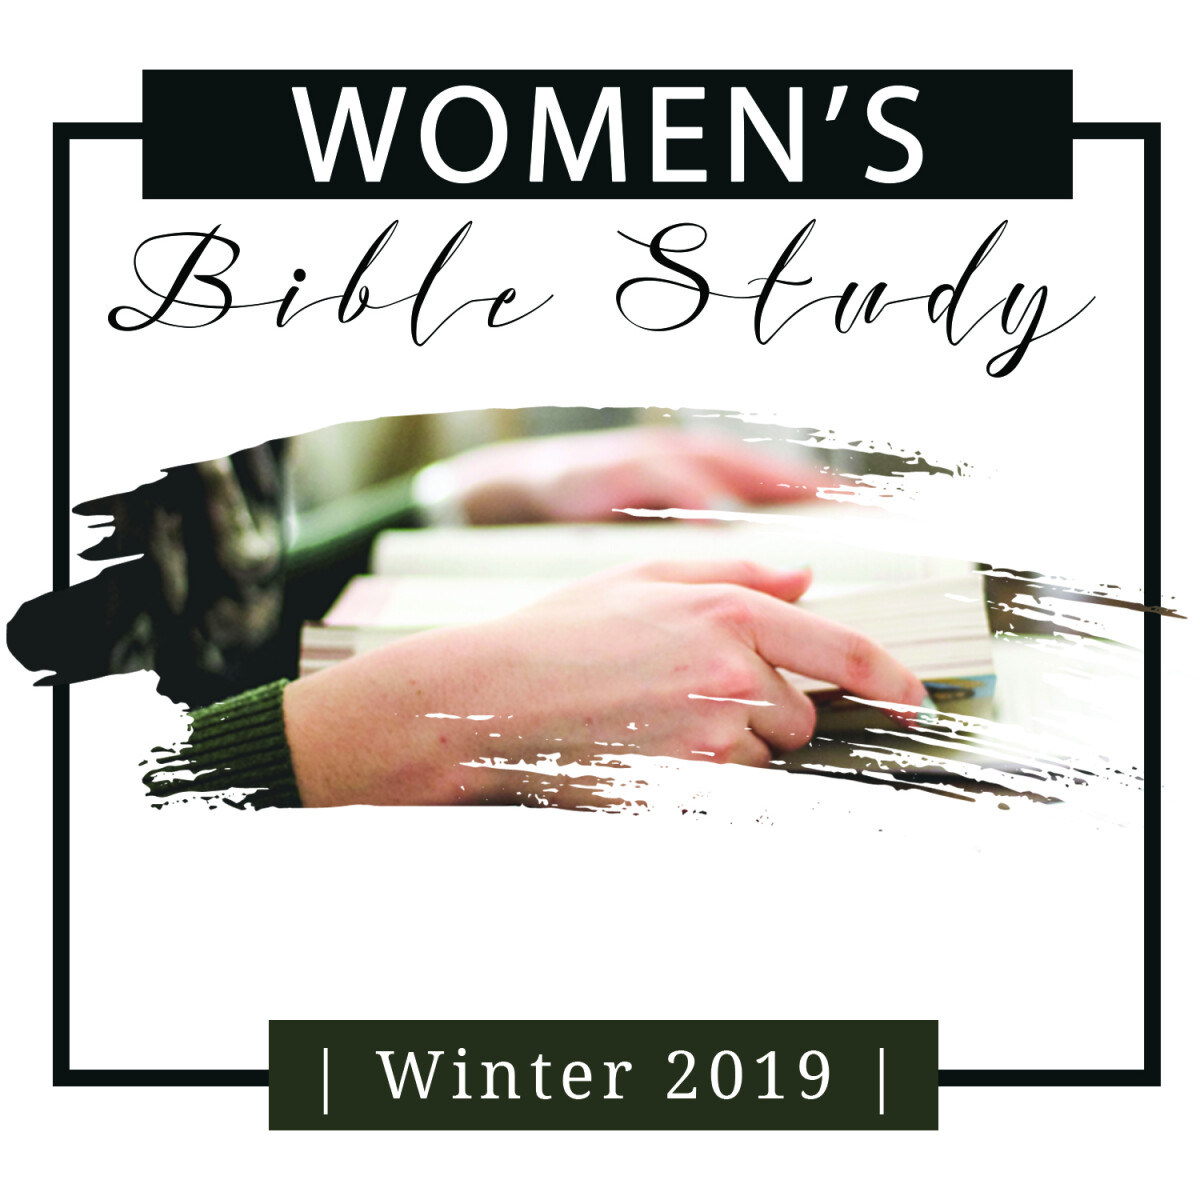 Women's Tuesday AM Bible Studies, begin January 8, 2019